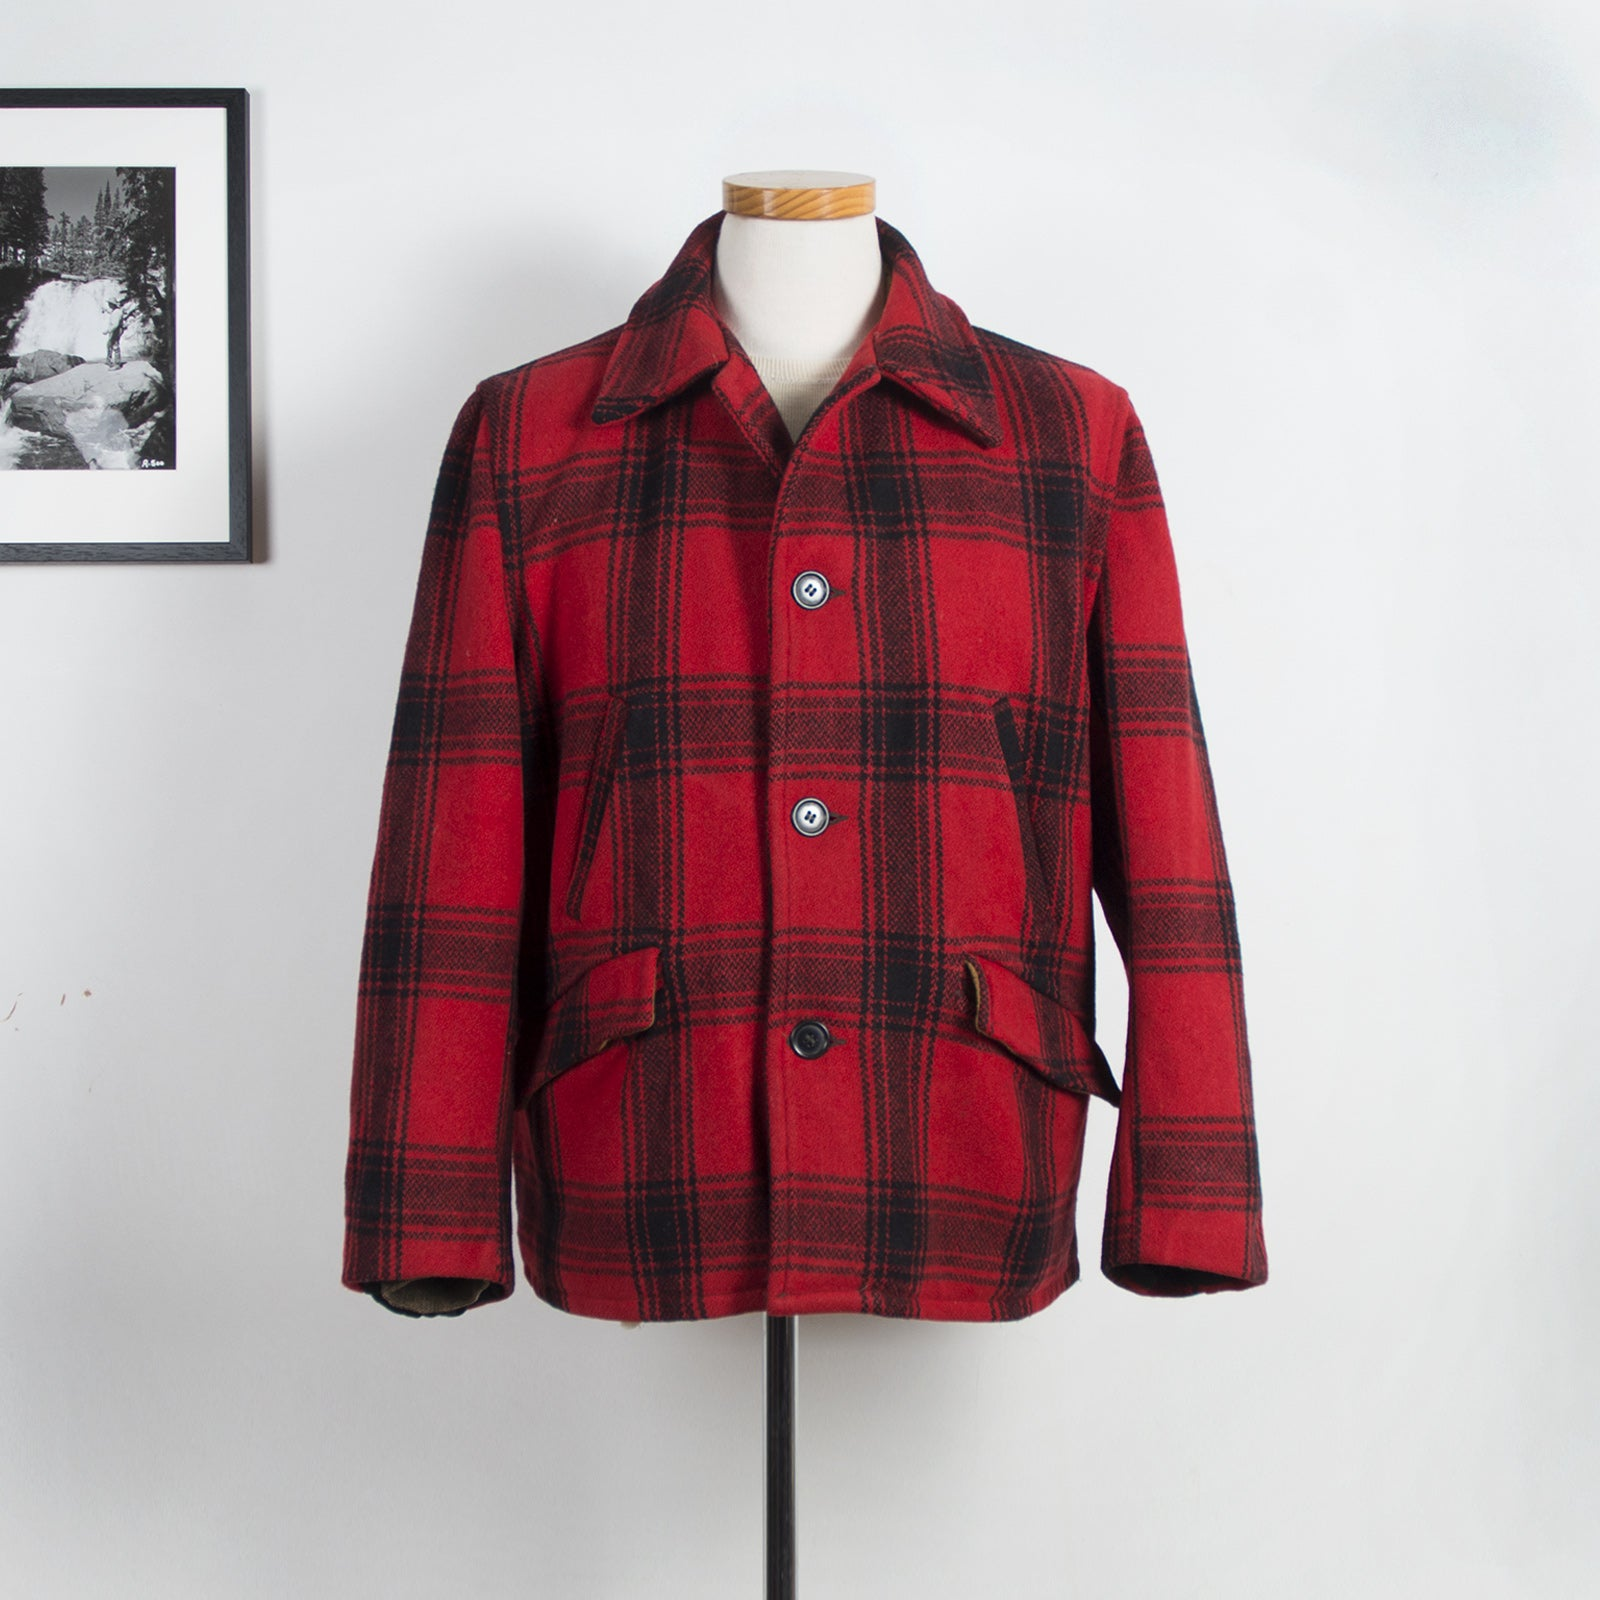 J.C. Higgins Checkered Jacket Red